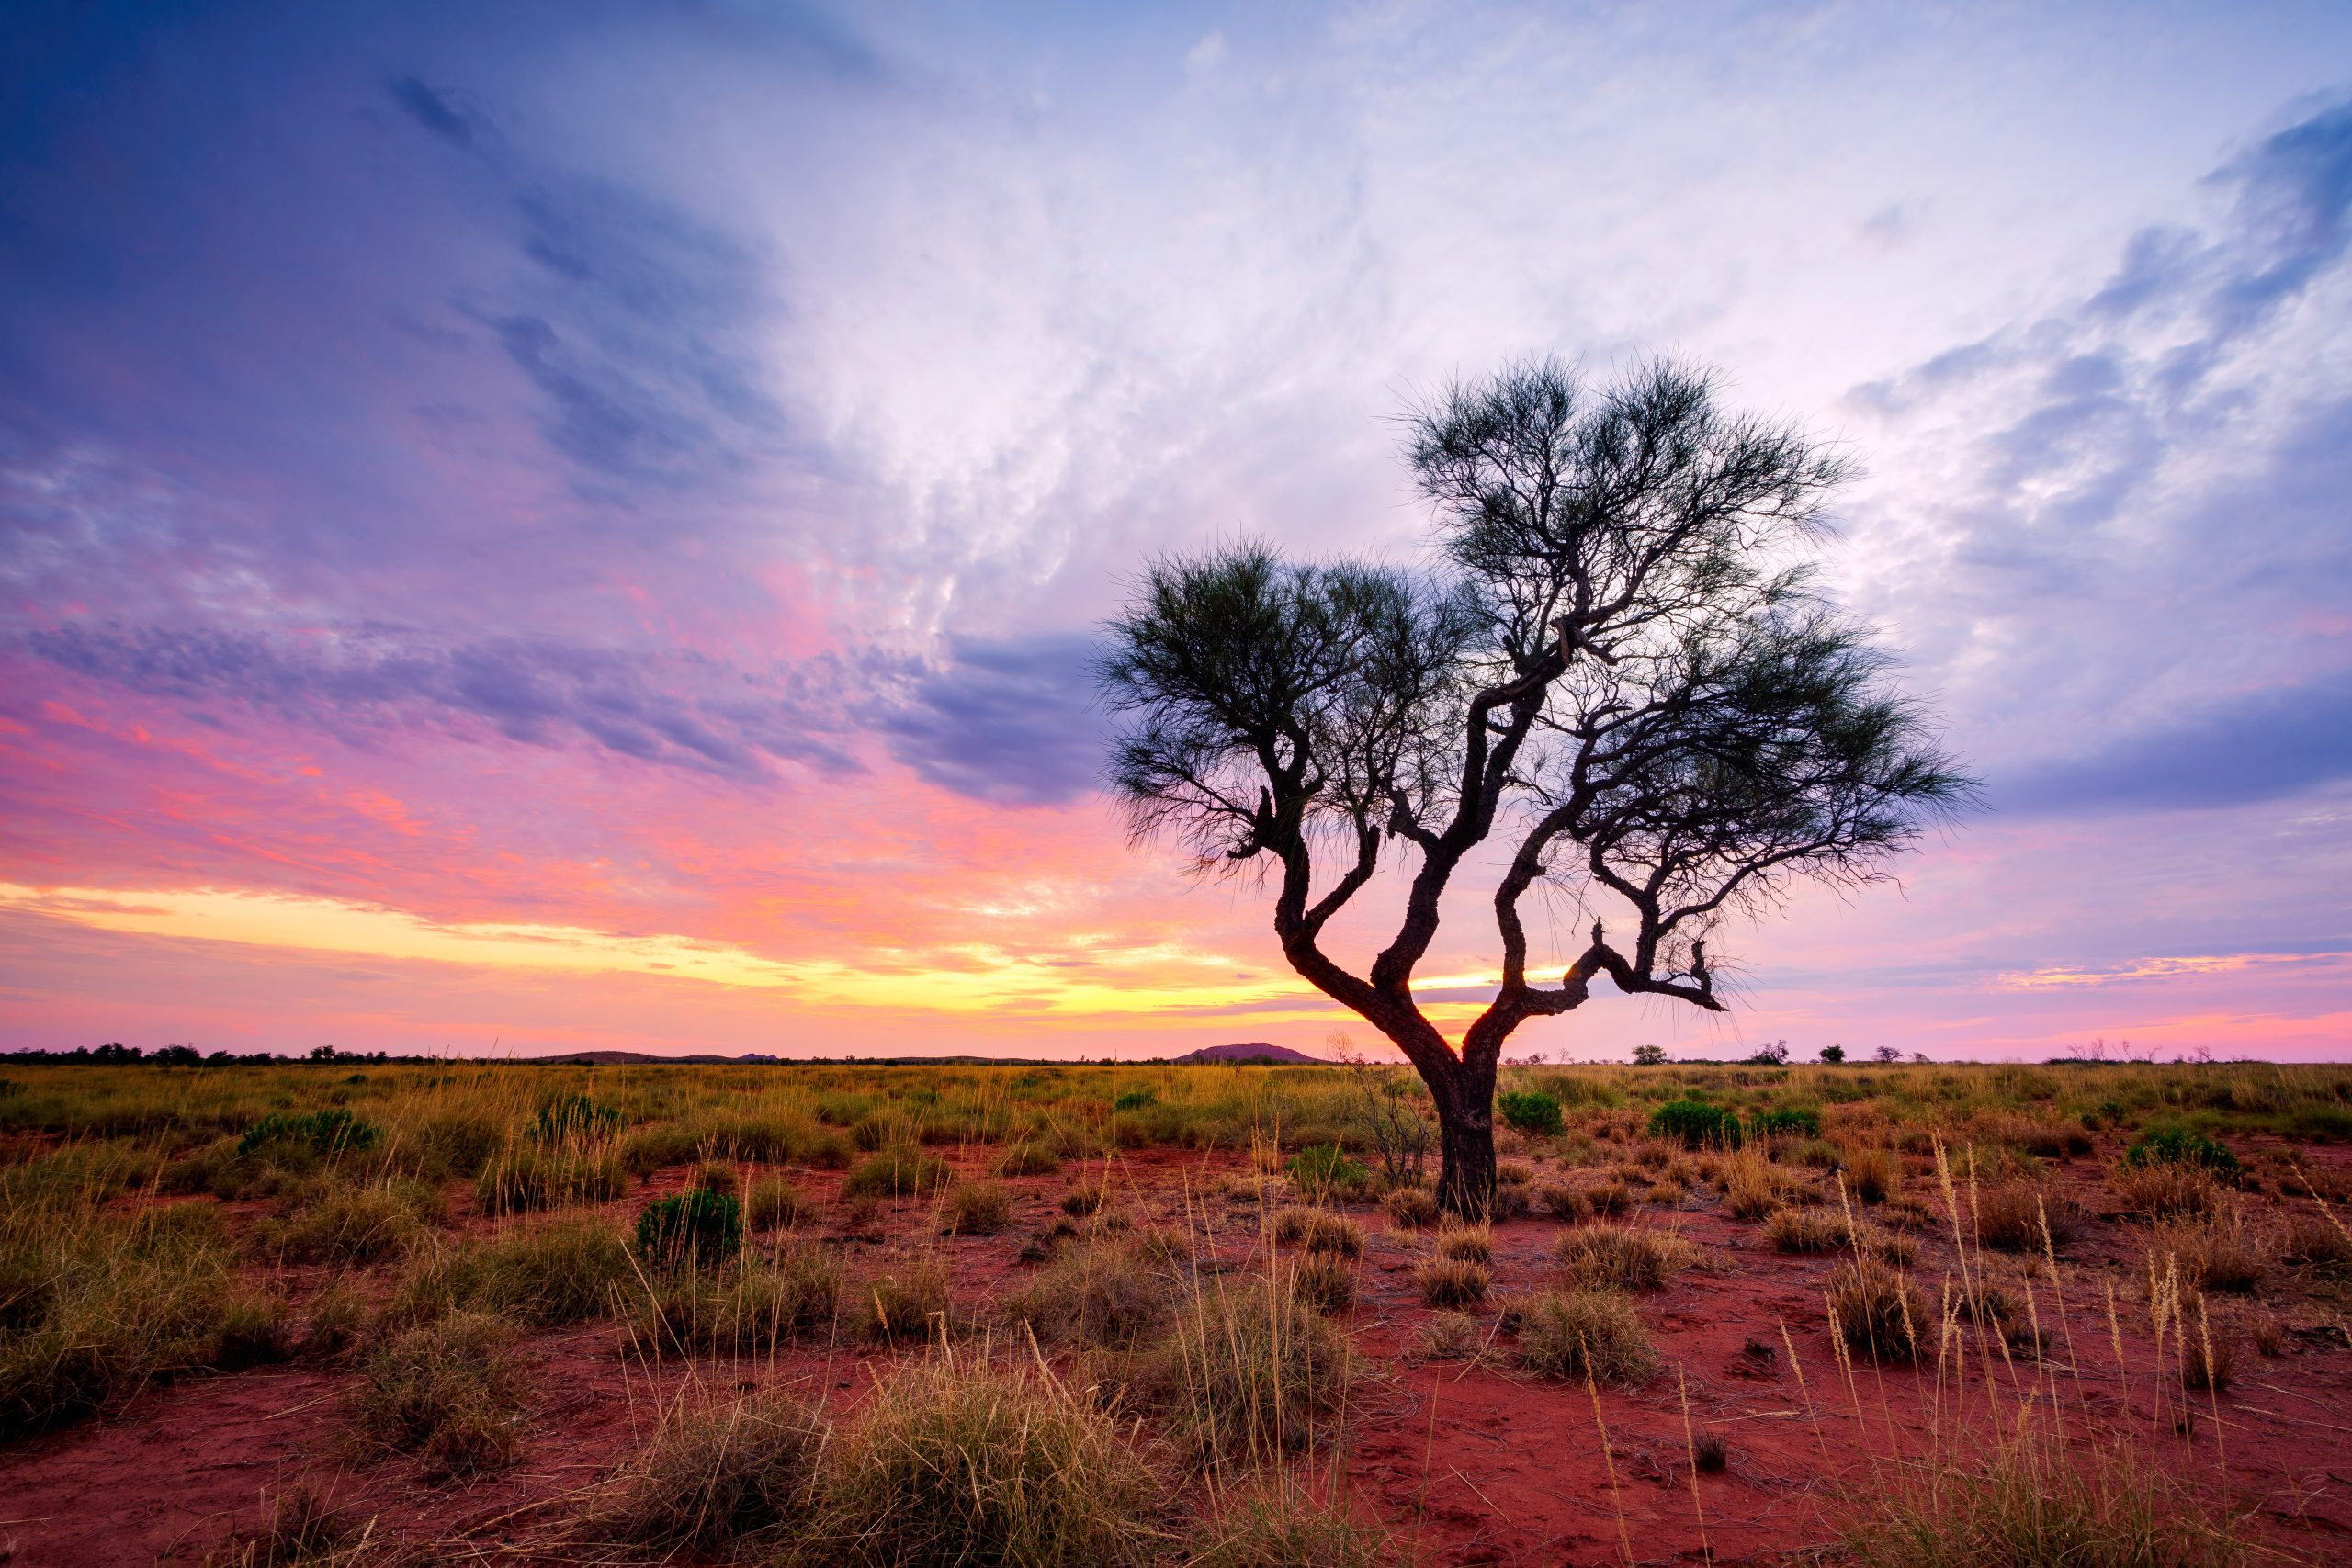 A Hakea Tree in the Australian Outback